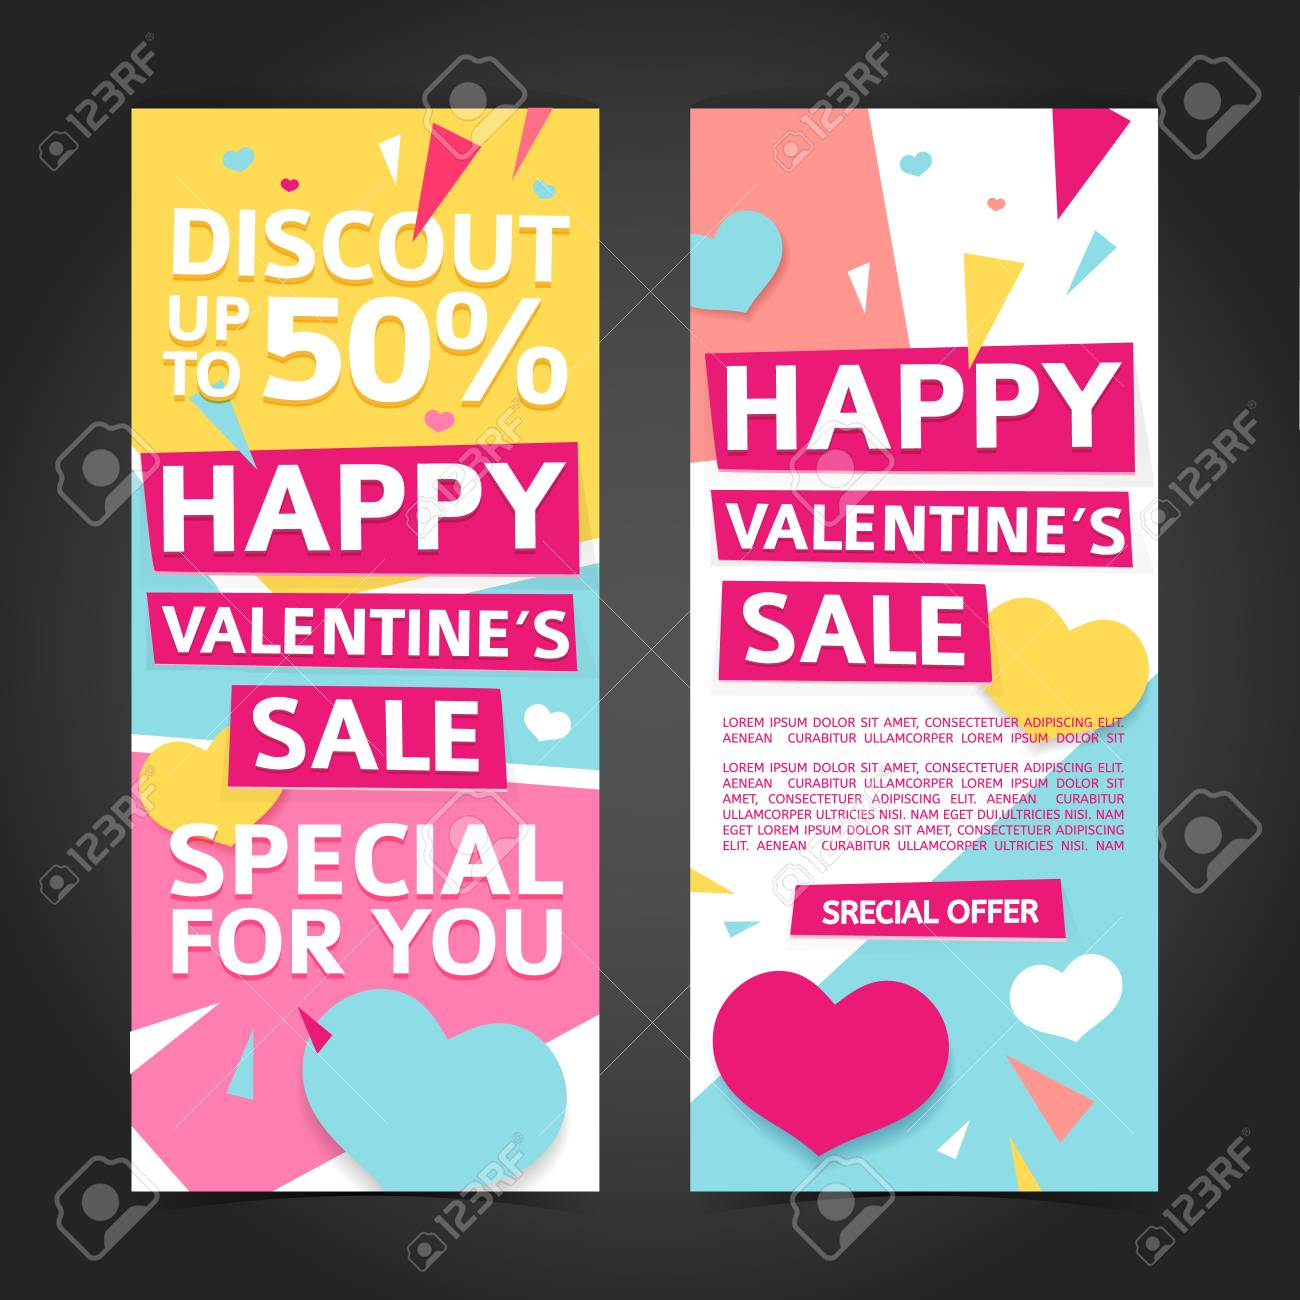 Template Design Vertical Banner For Valentines Day Special Offer